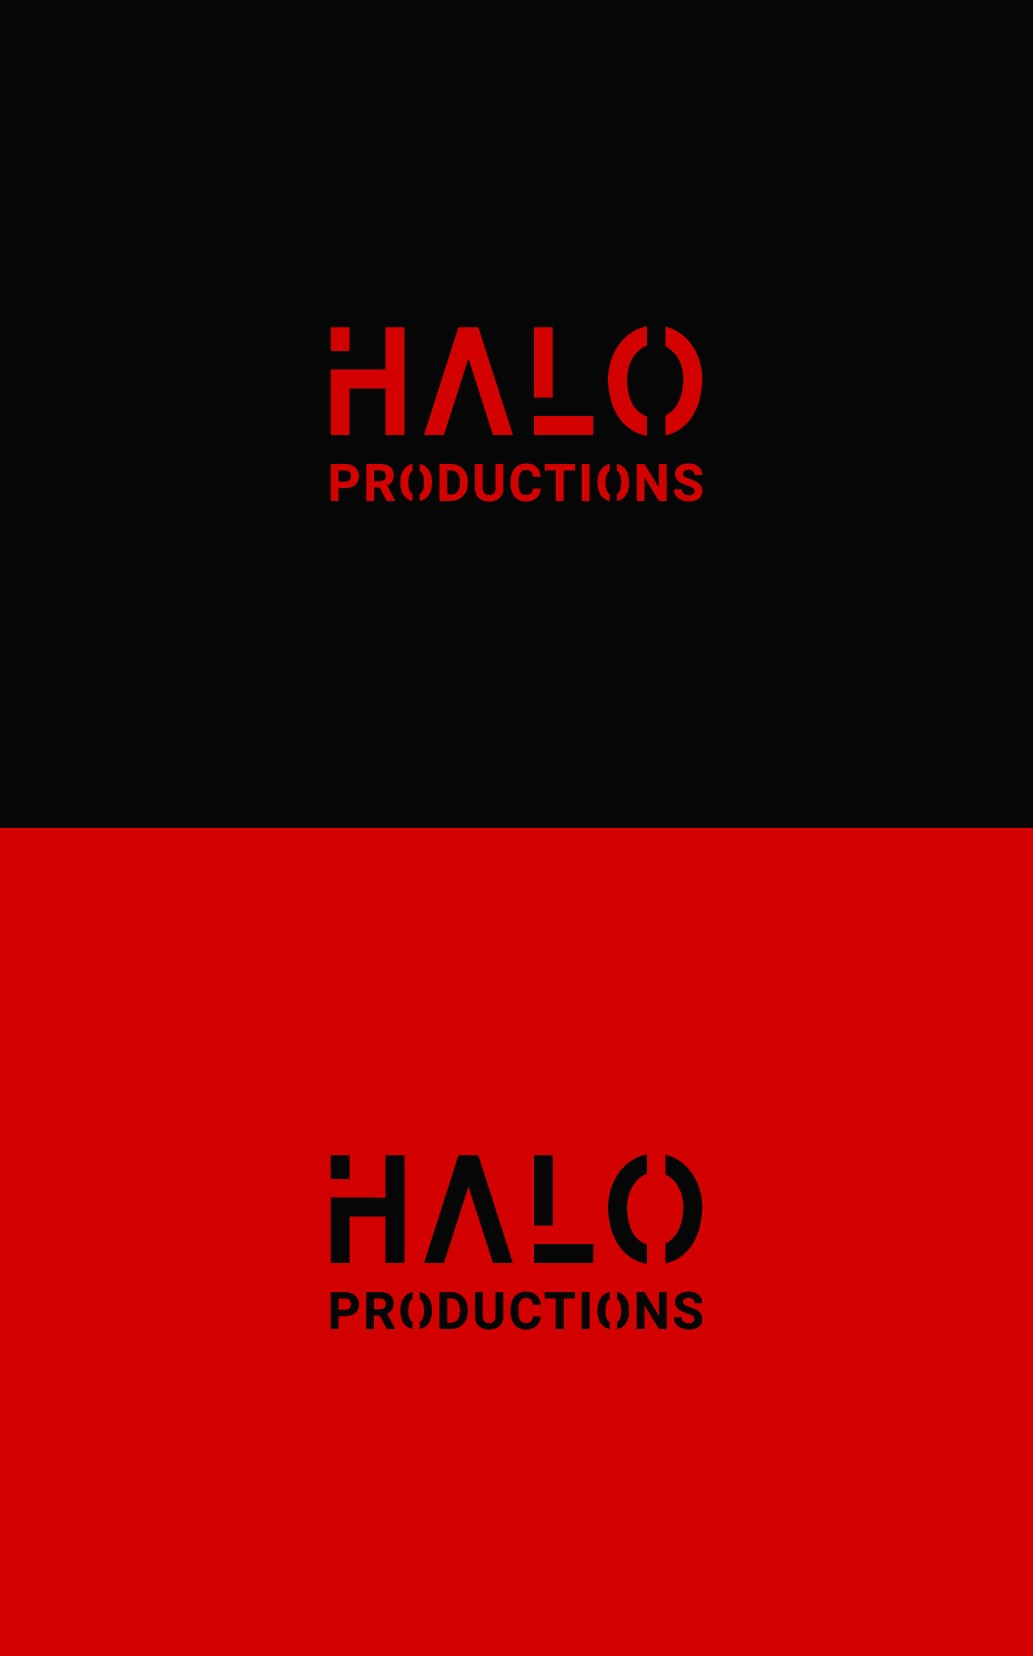 """Simple and Sharp logo, for """"Halo Productions"""" (use initials HP)"""